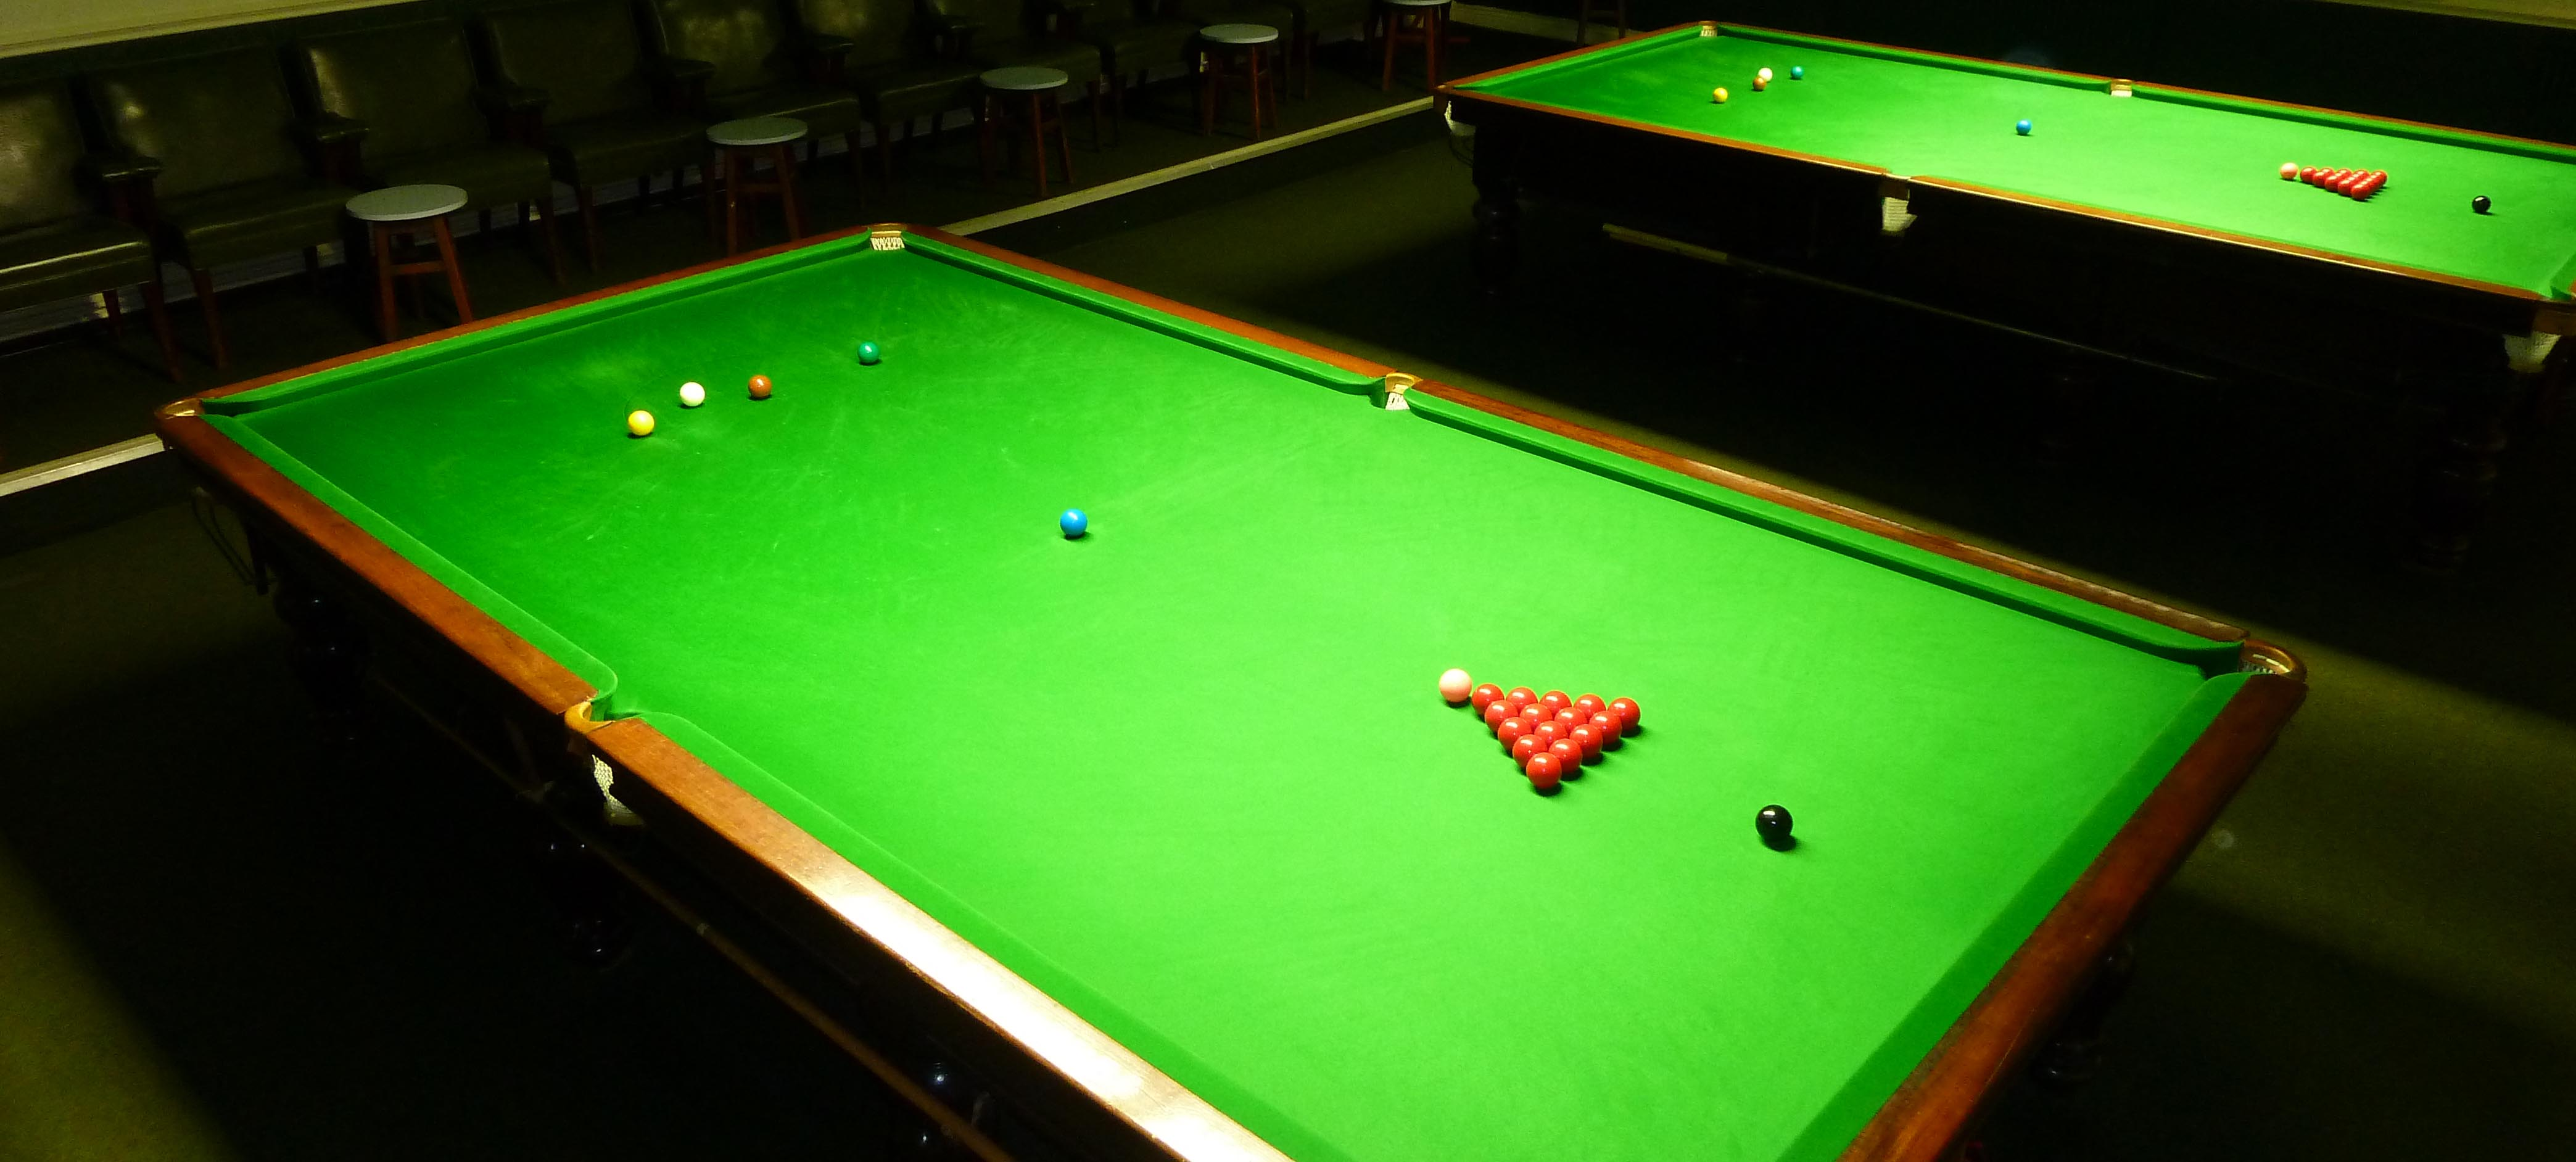 4176x1884 - Snooker Wallpapers 22